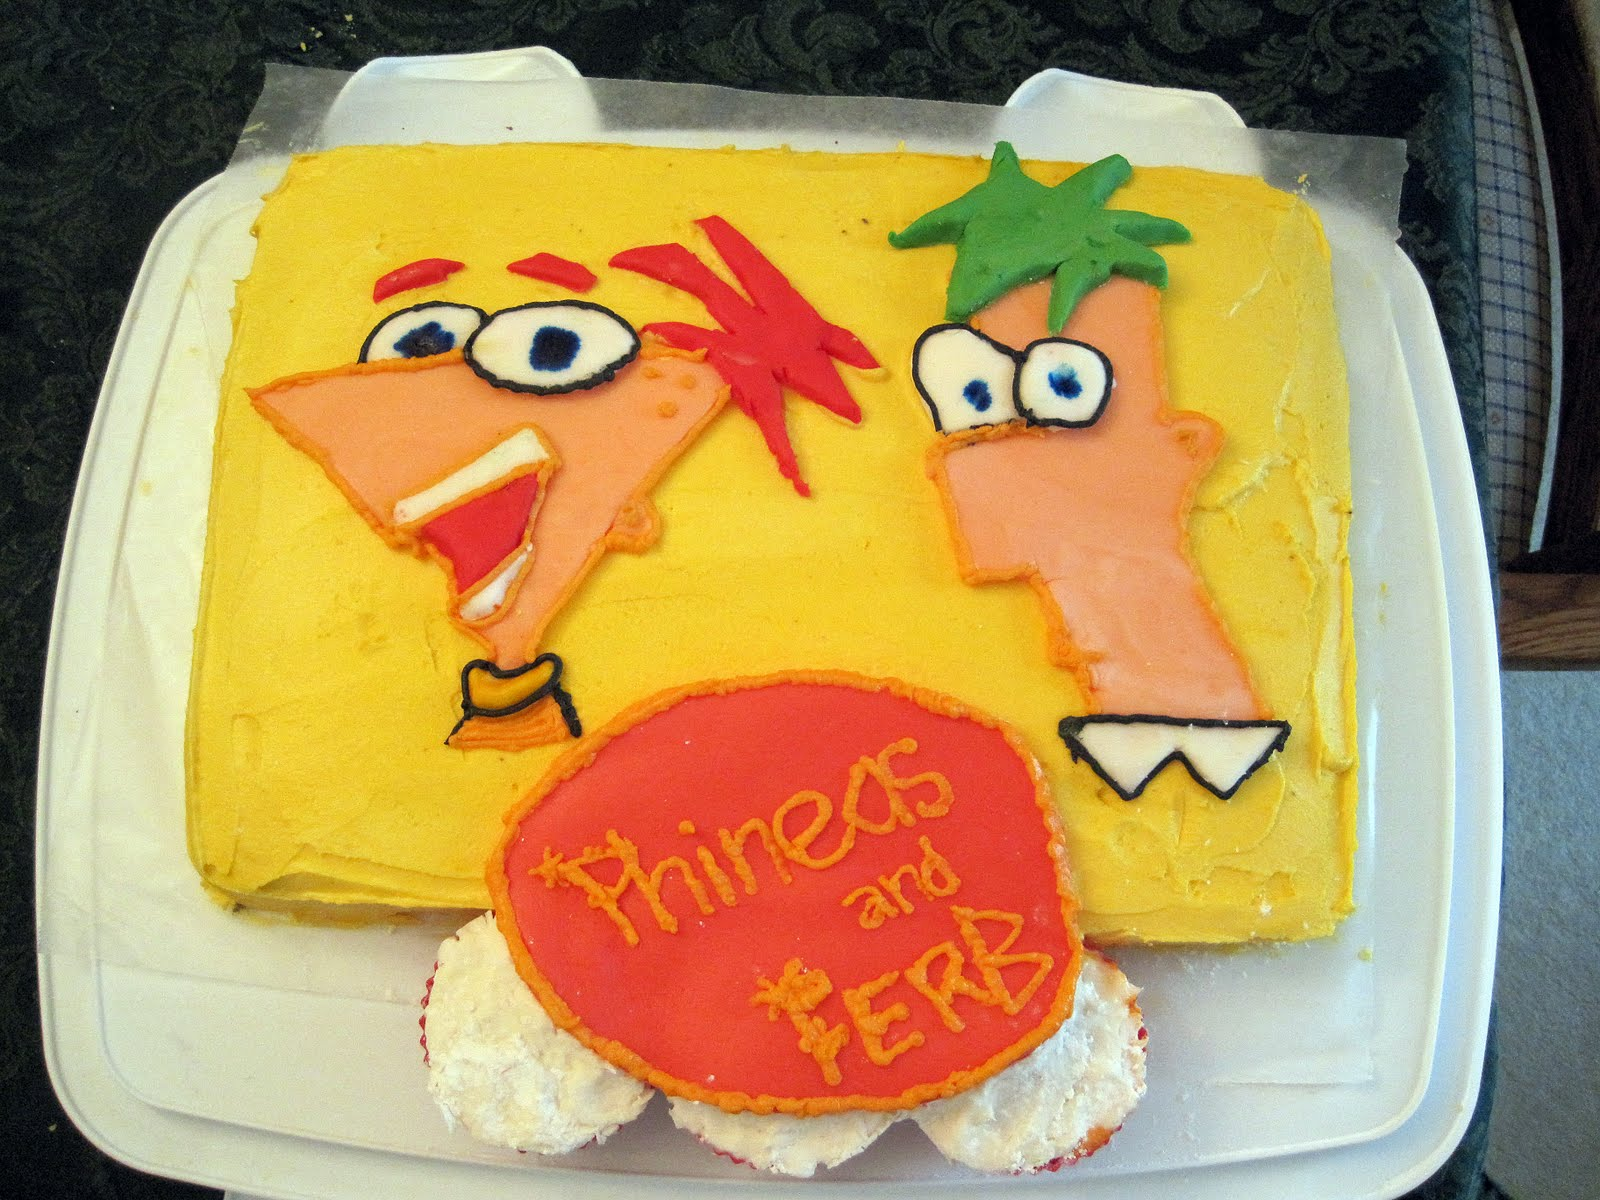 Picture Of Phineas And Ferb Cake From Walmart